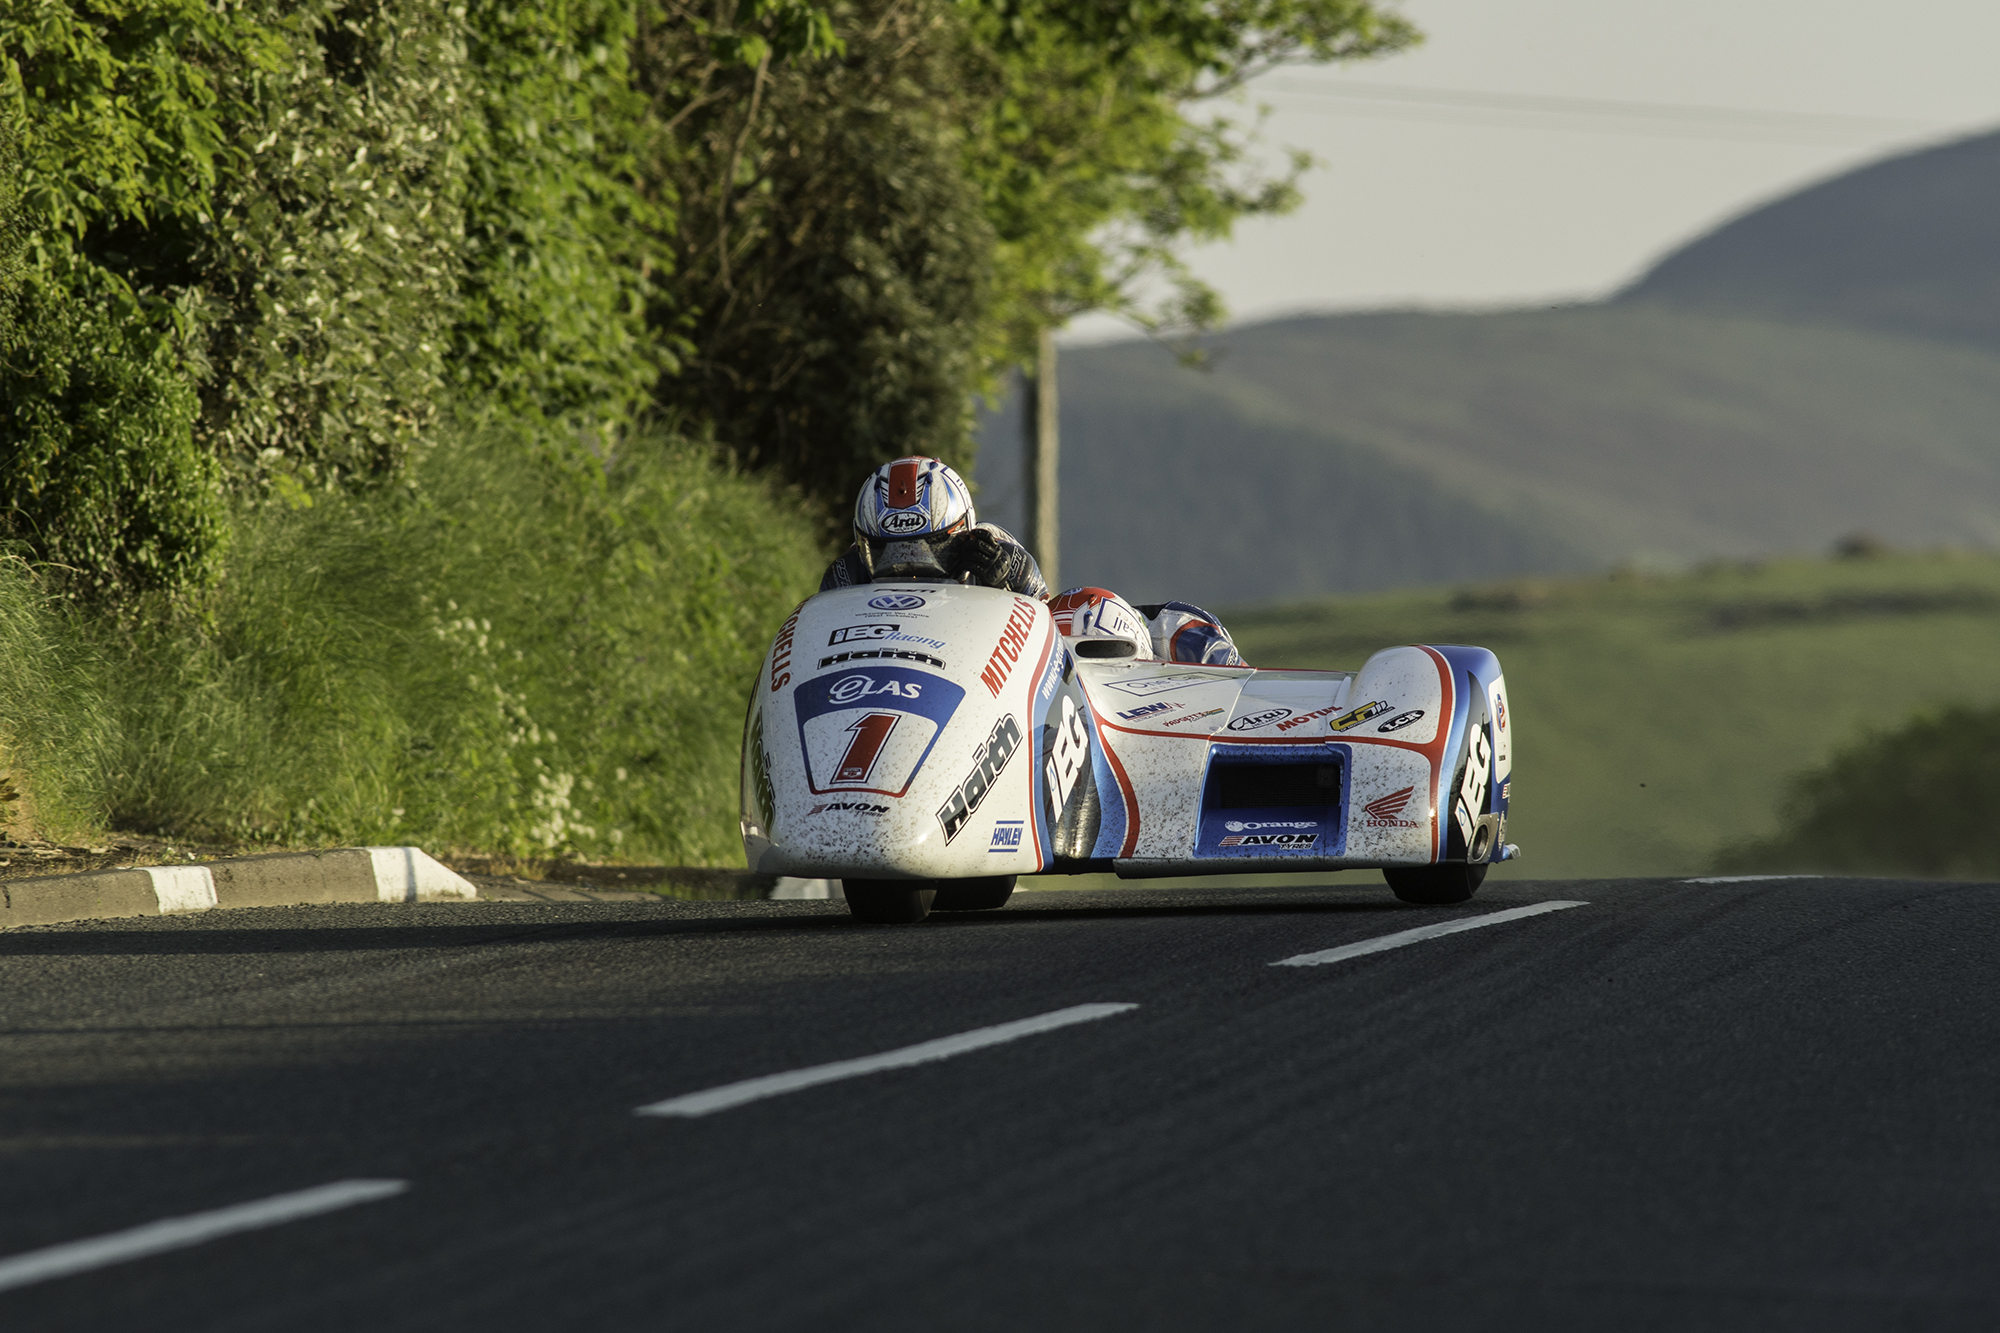 Birchall's To Hold Number 1 Plate In Locate.im Sidecar Encounters